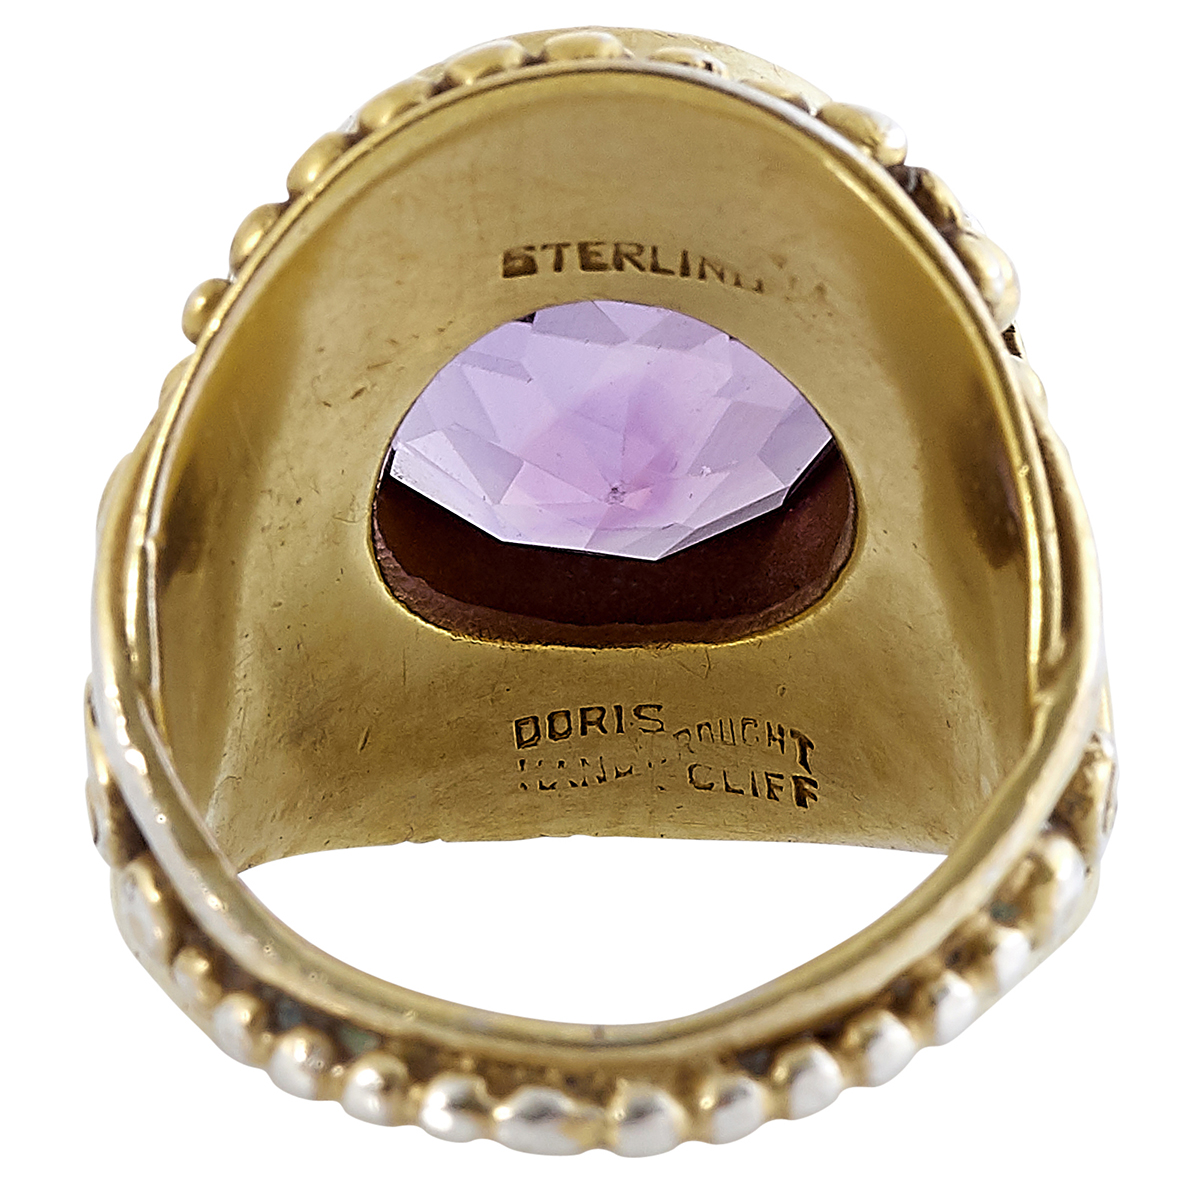 Doris Cliff, ladies ring